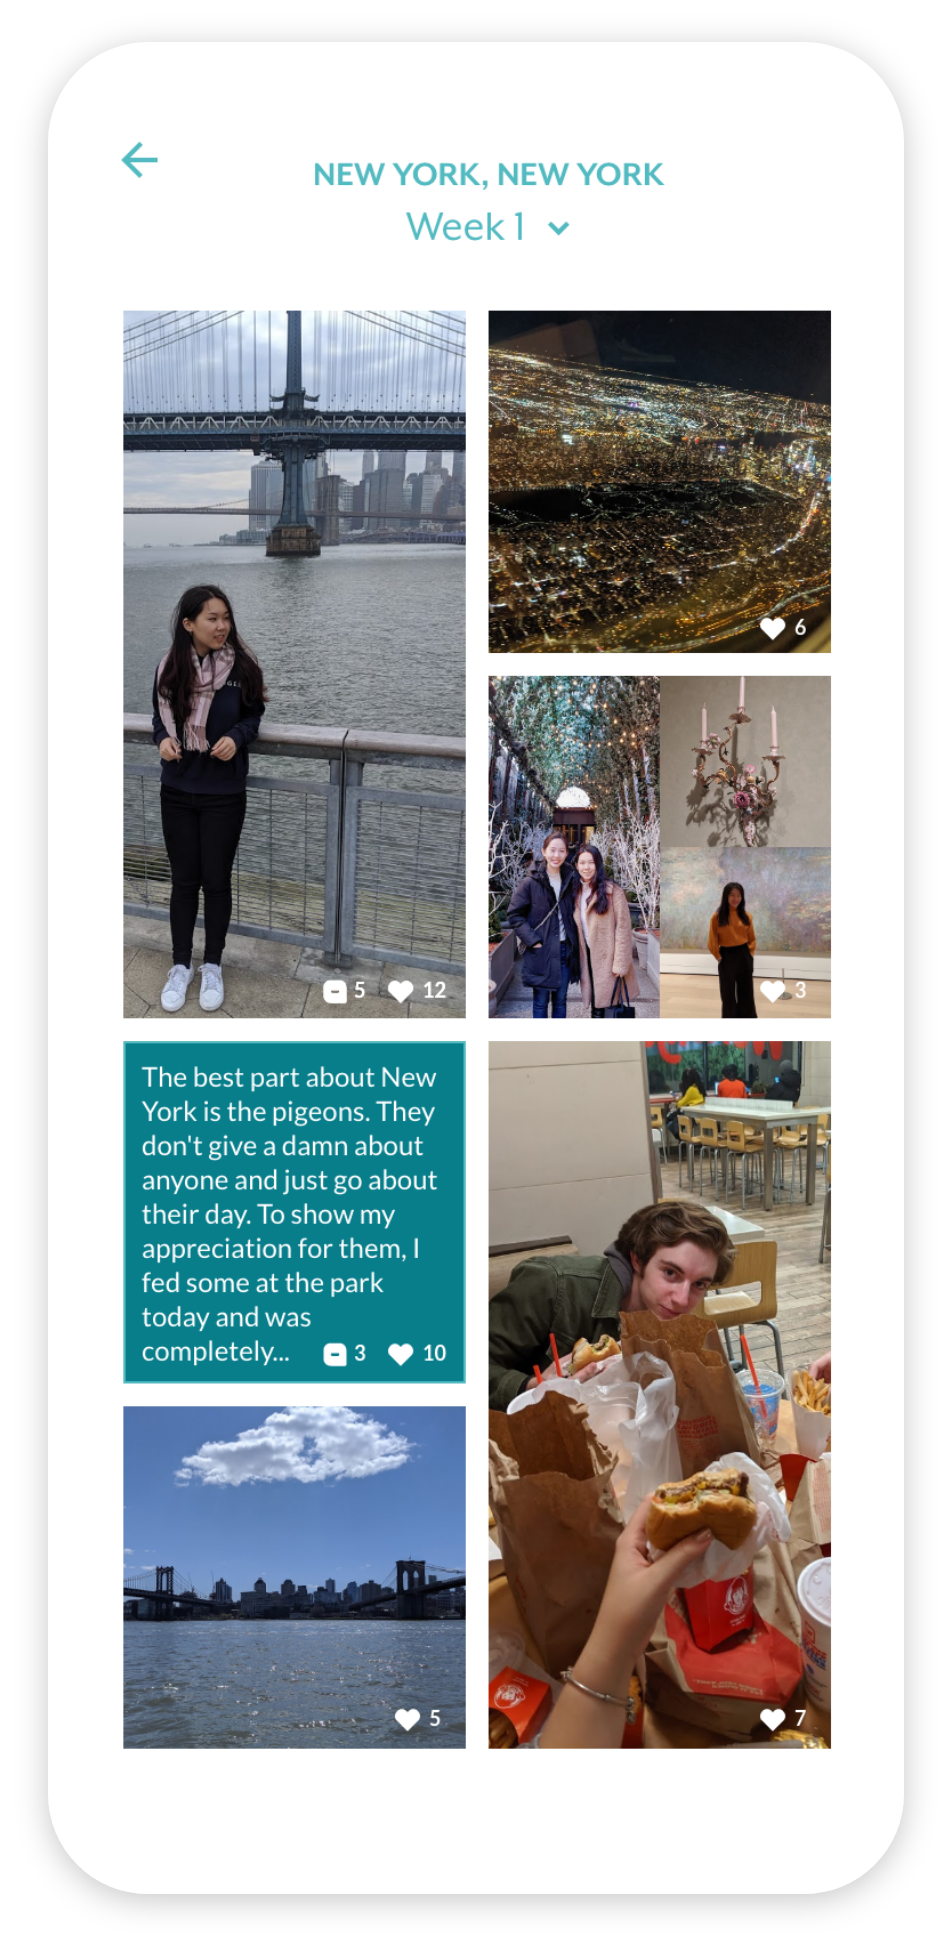 the 'quilt' of a trip, with images and text posts in a collage